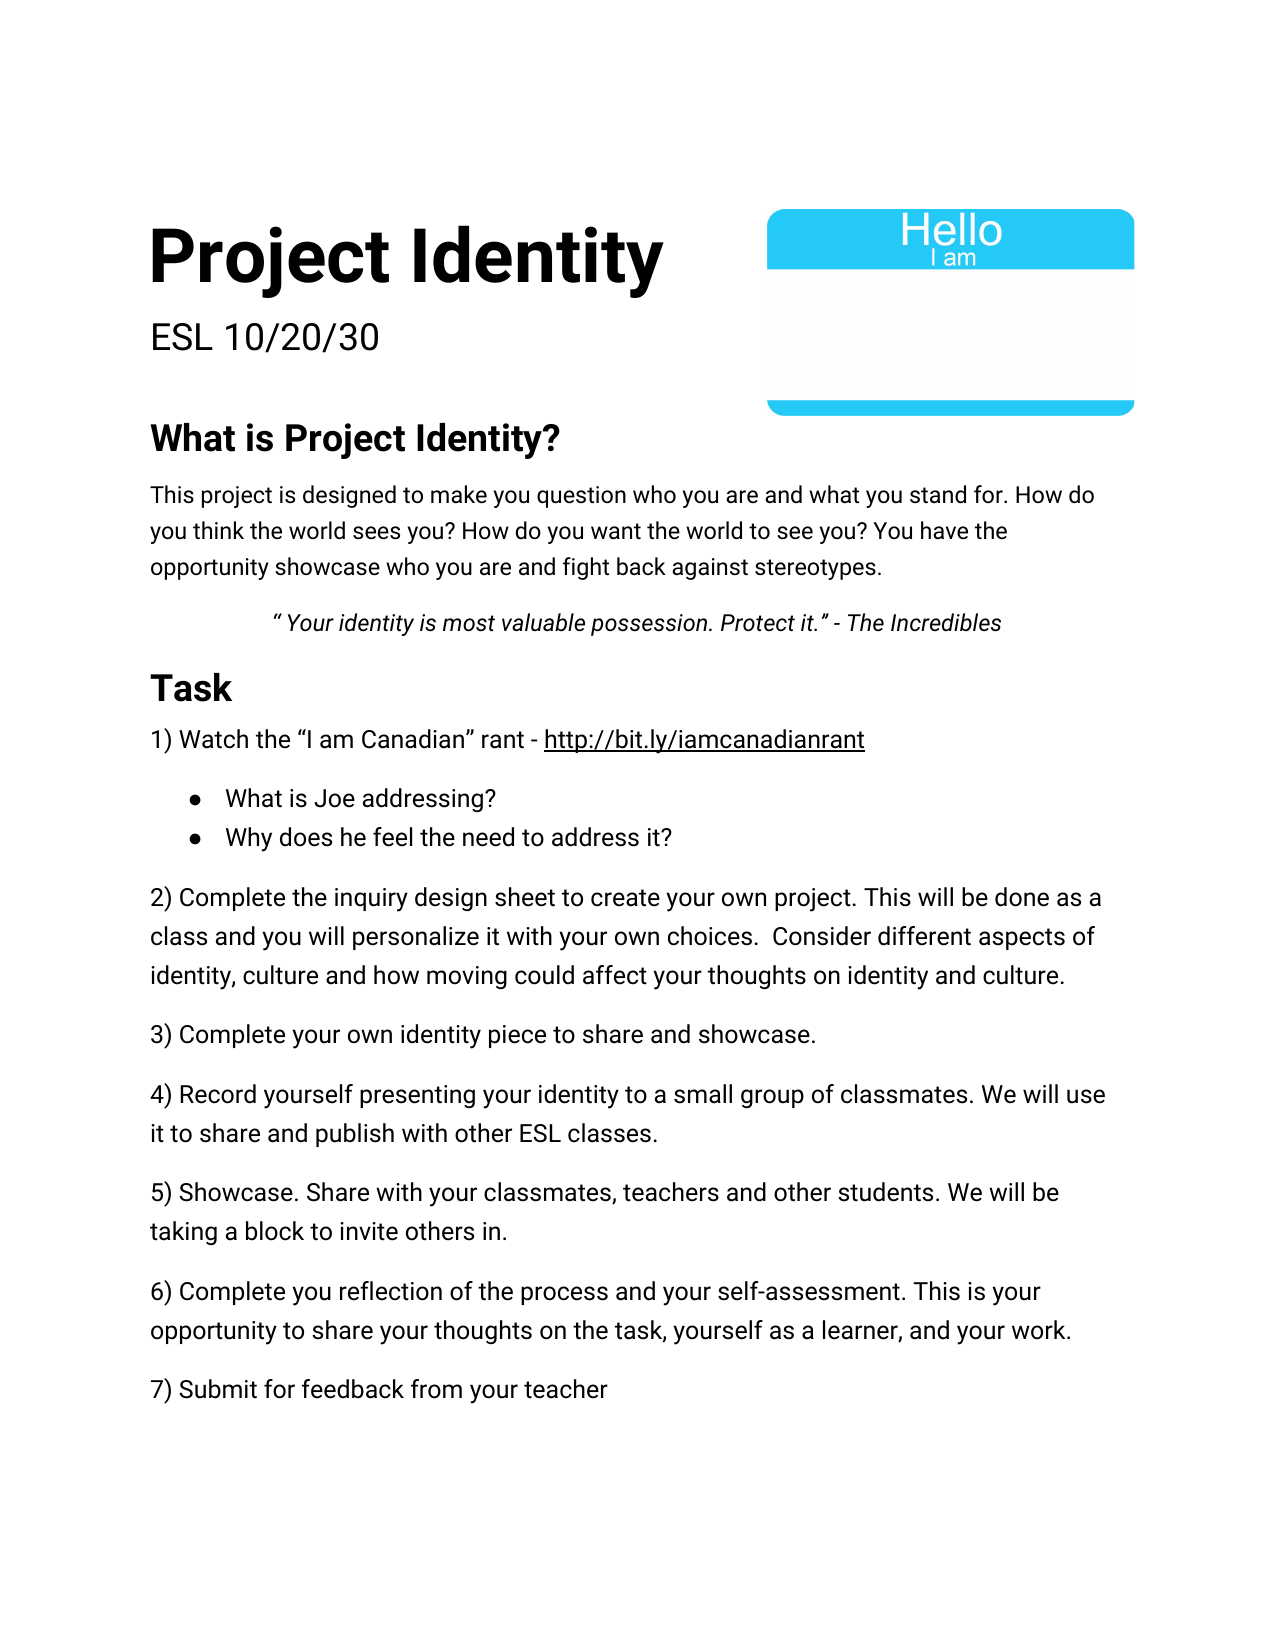 Project Identity  Resource Preview